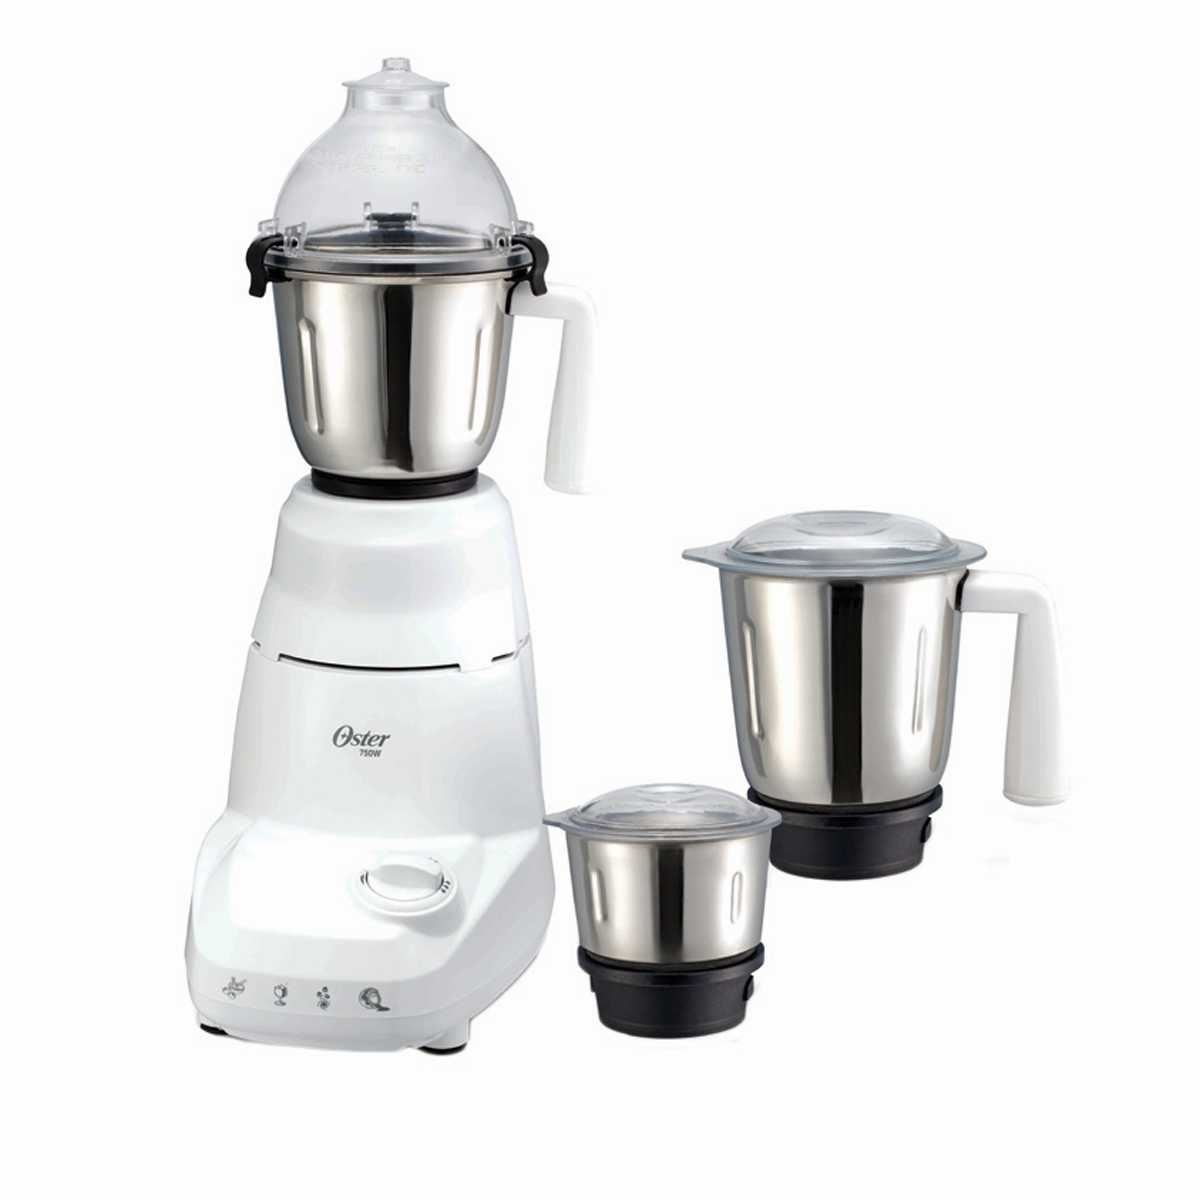 Picture of Oster Mixer Grinder MGSTSL 6020- 449